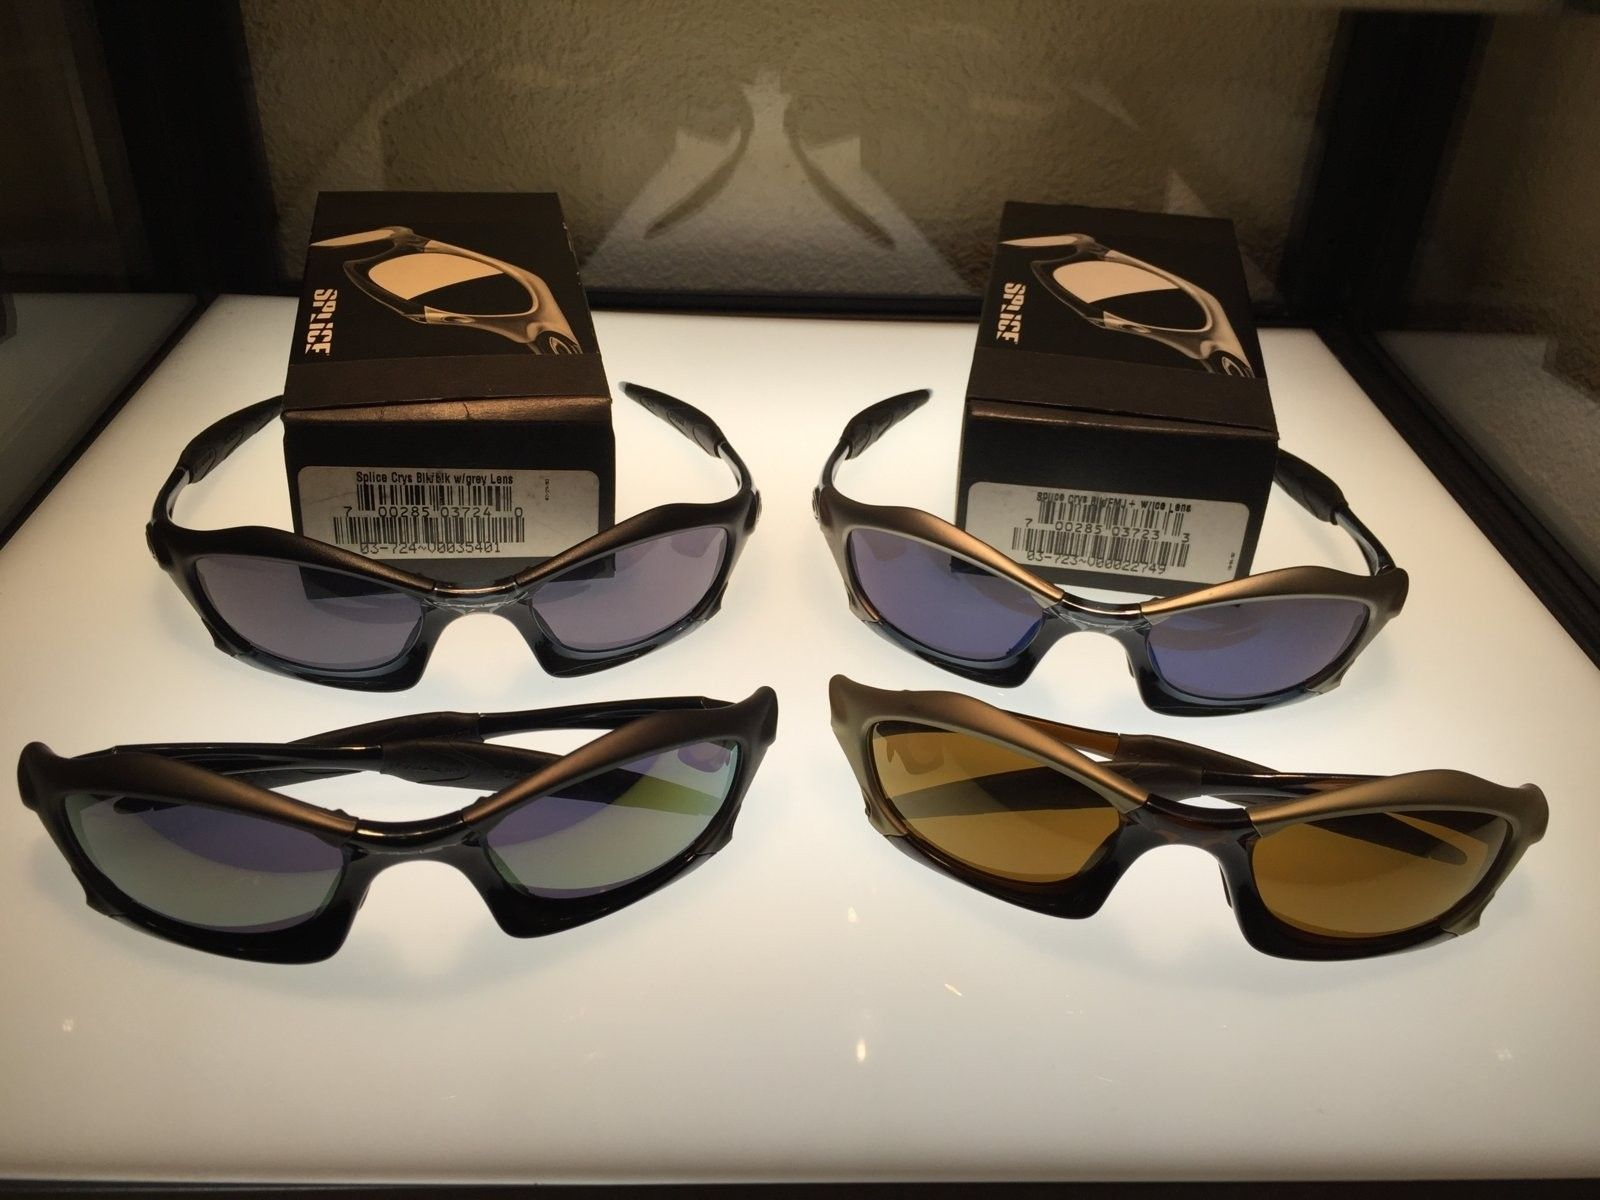 Oakley Splice bnew condition, with or without box - image.jpeg